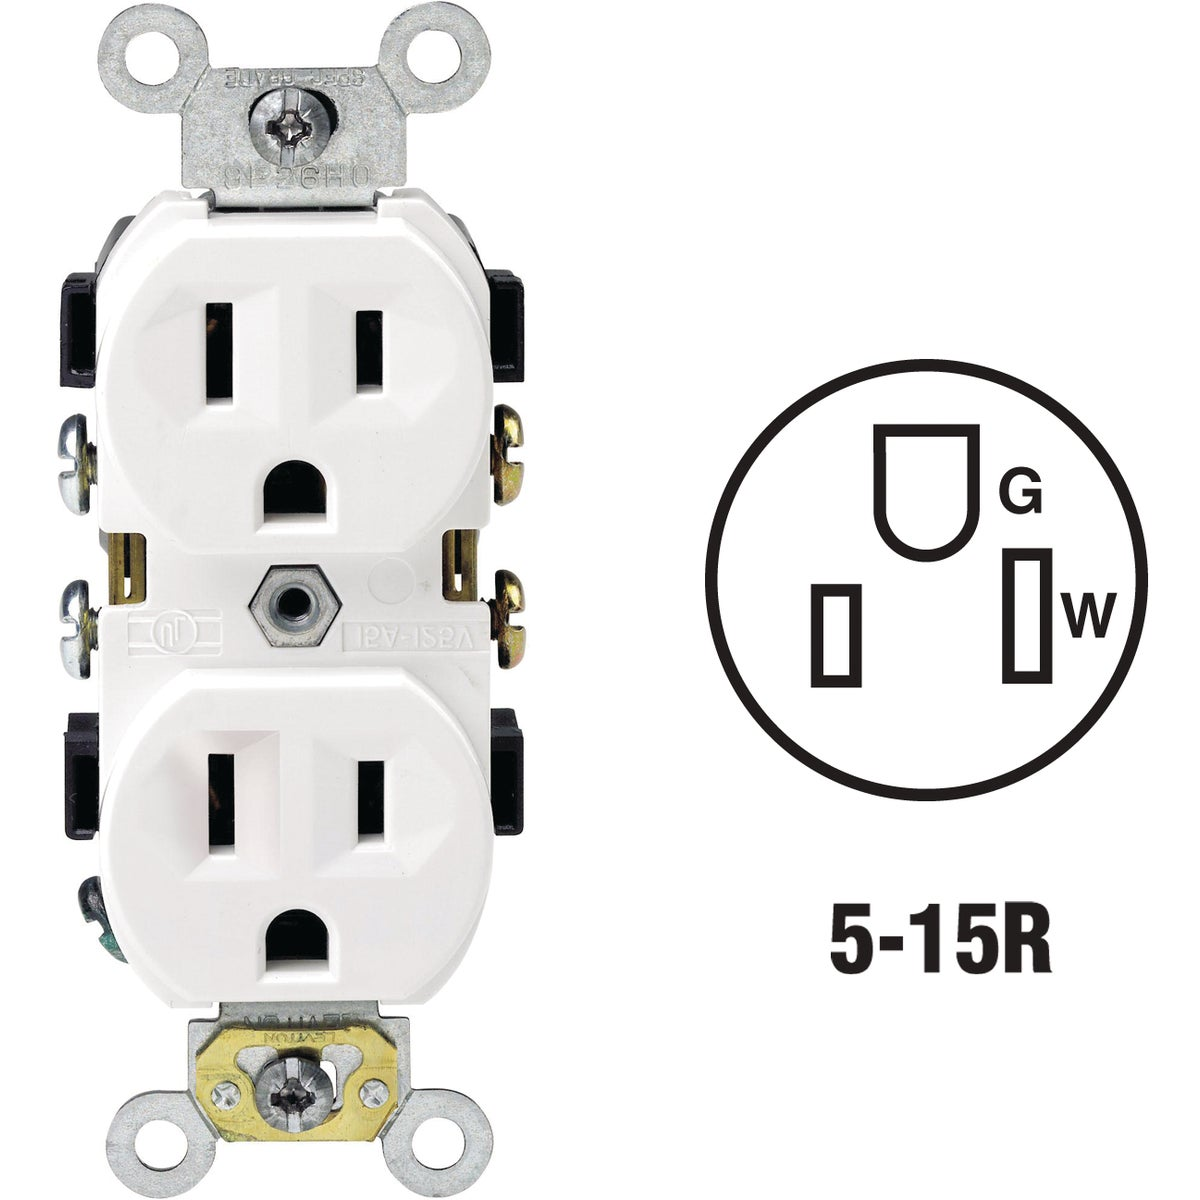 WHT DUPLEX OUTLET - 112-BR15-00W by Leviton Mfg Co